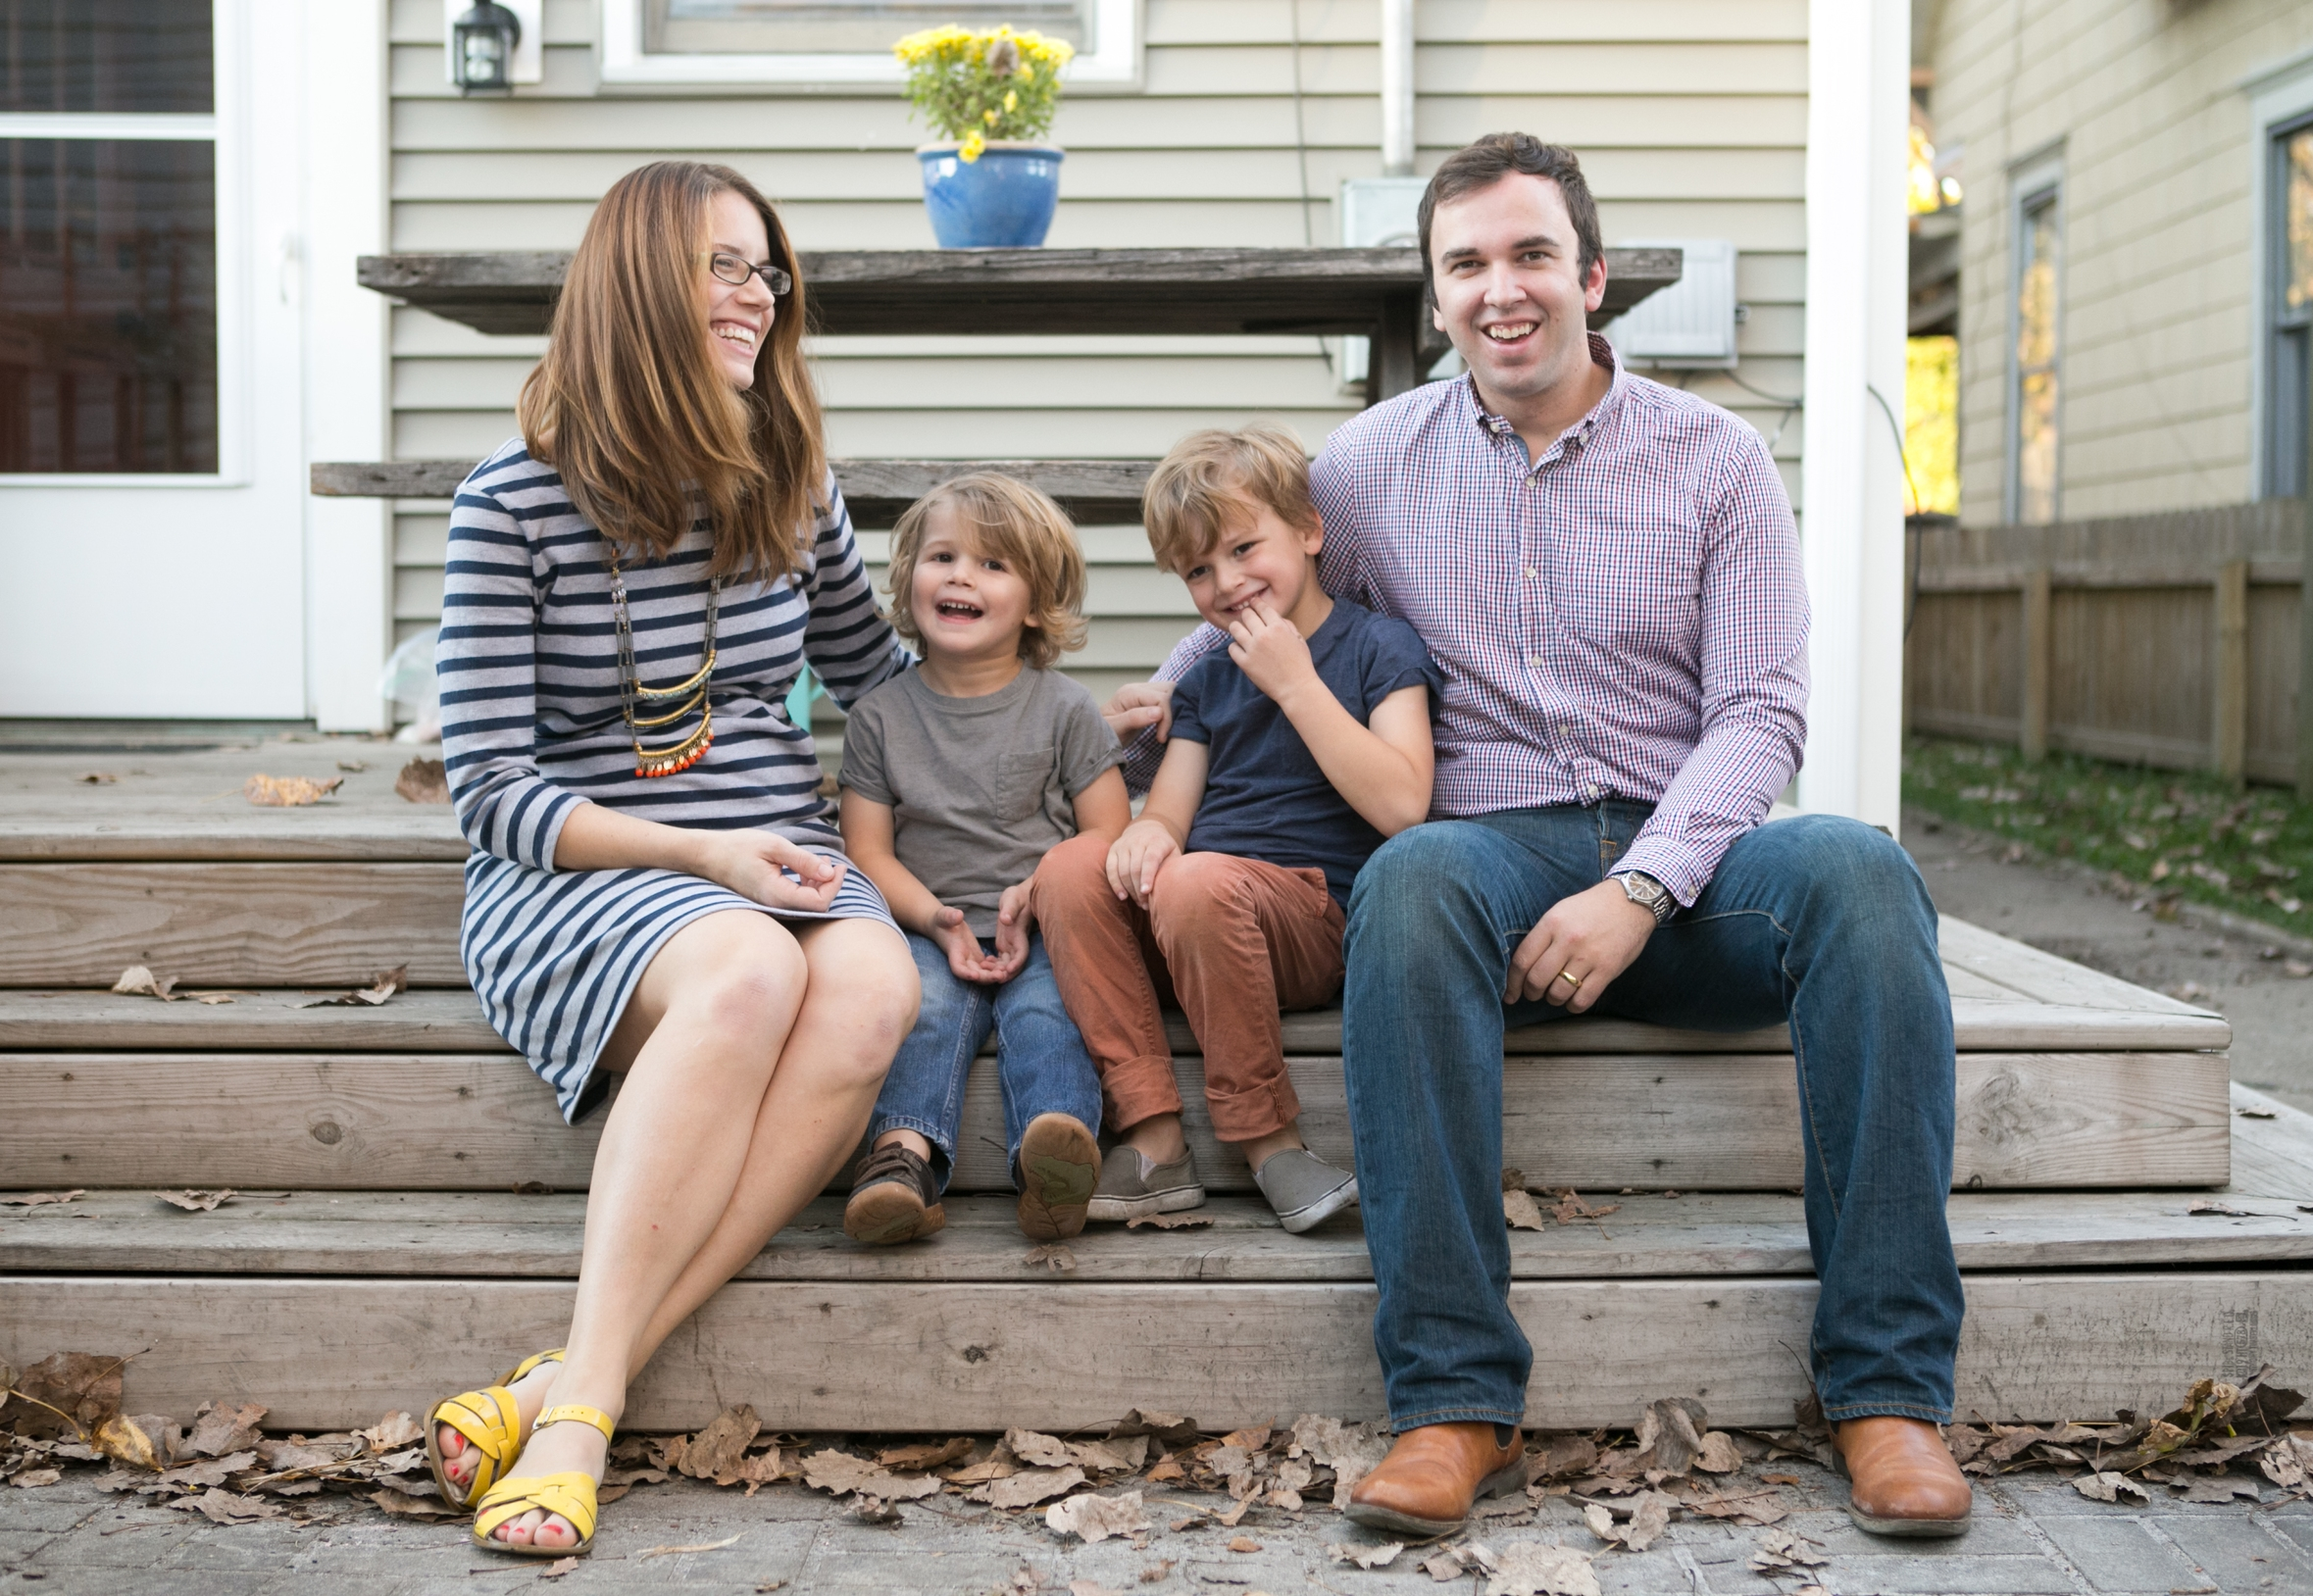 Adrian & Ann Pumphrey sit on the back steps of their home in historic Fountain Square with their two sons, aged 5 and 3. [photo credit: Melissa Williams]